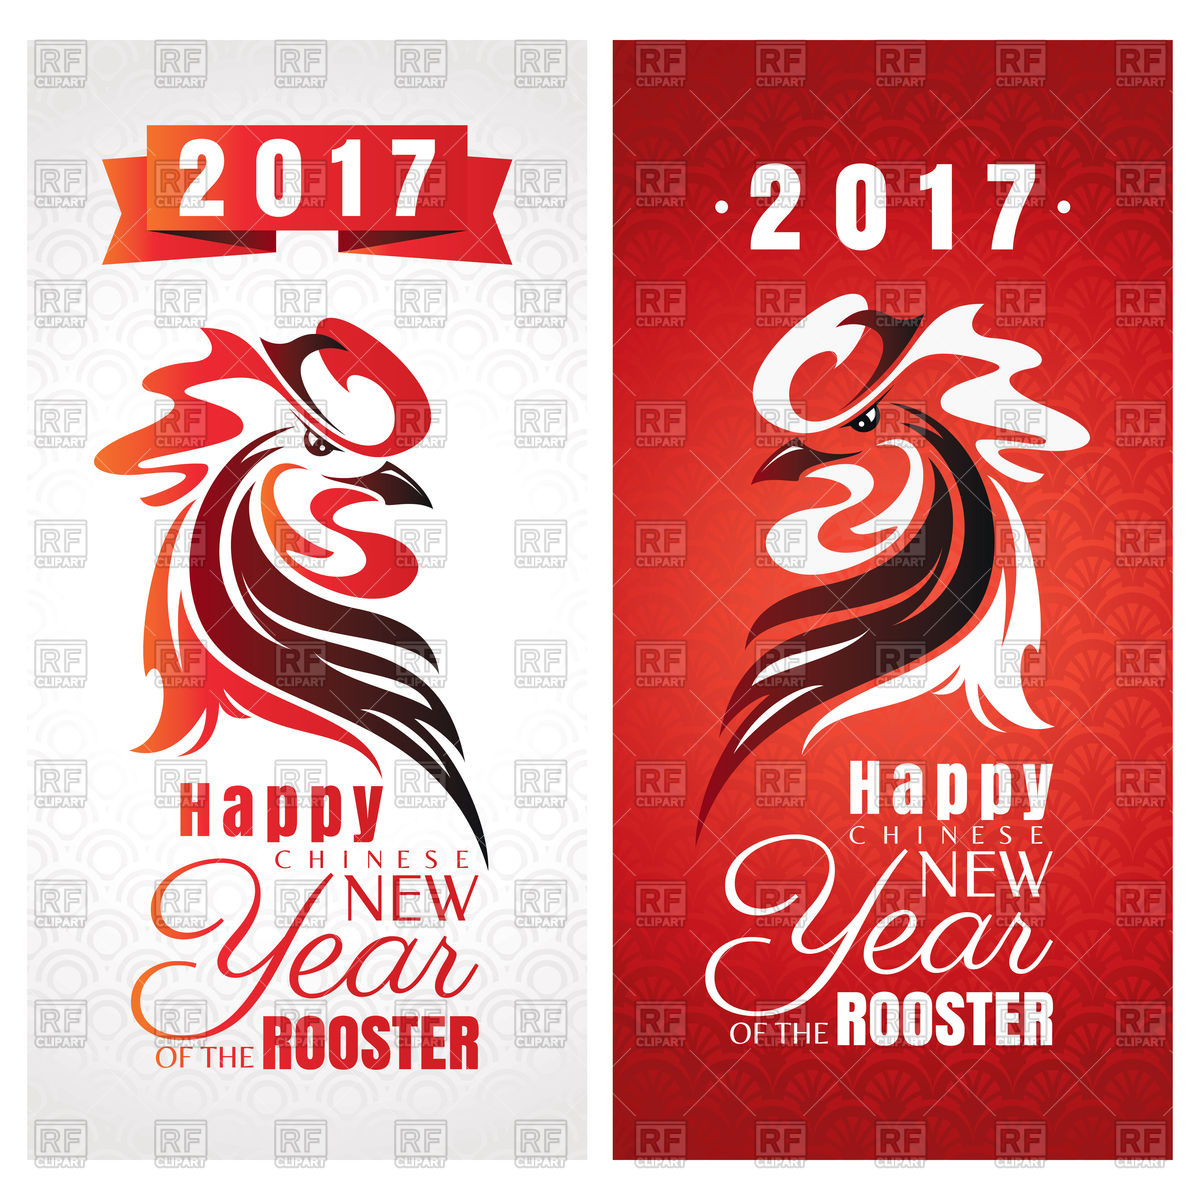 1200x1200 chinese new year greeting cards with rooster for 2017 year vector